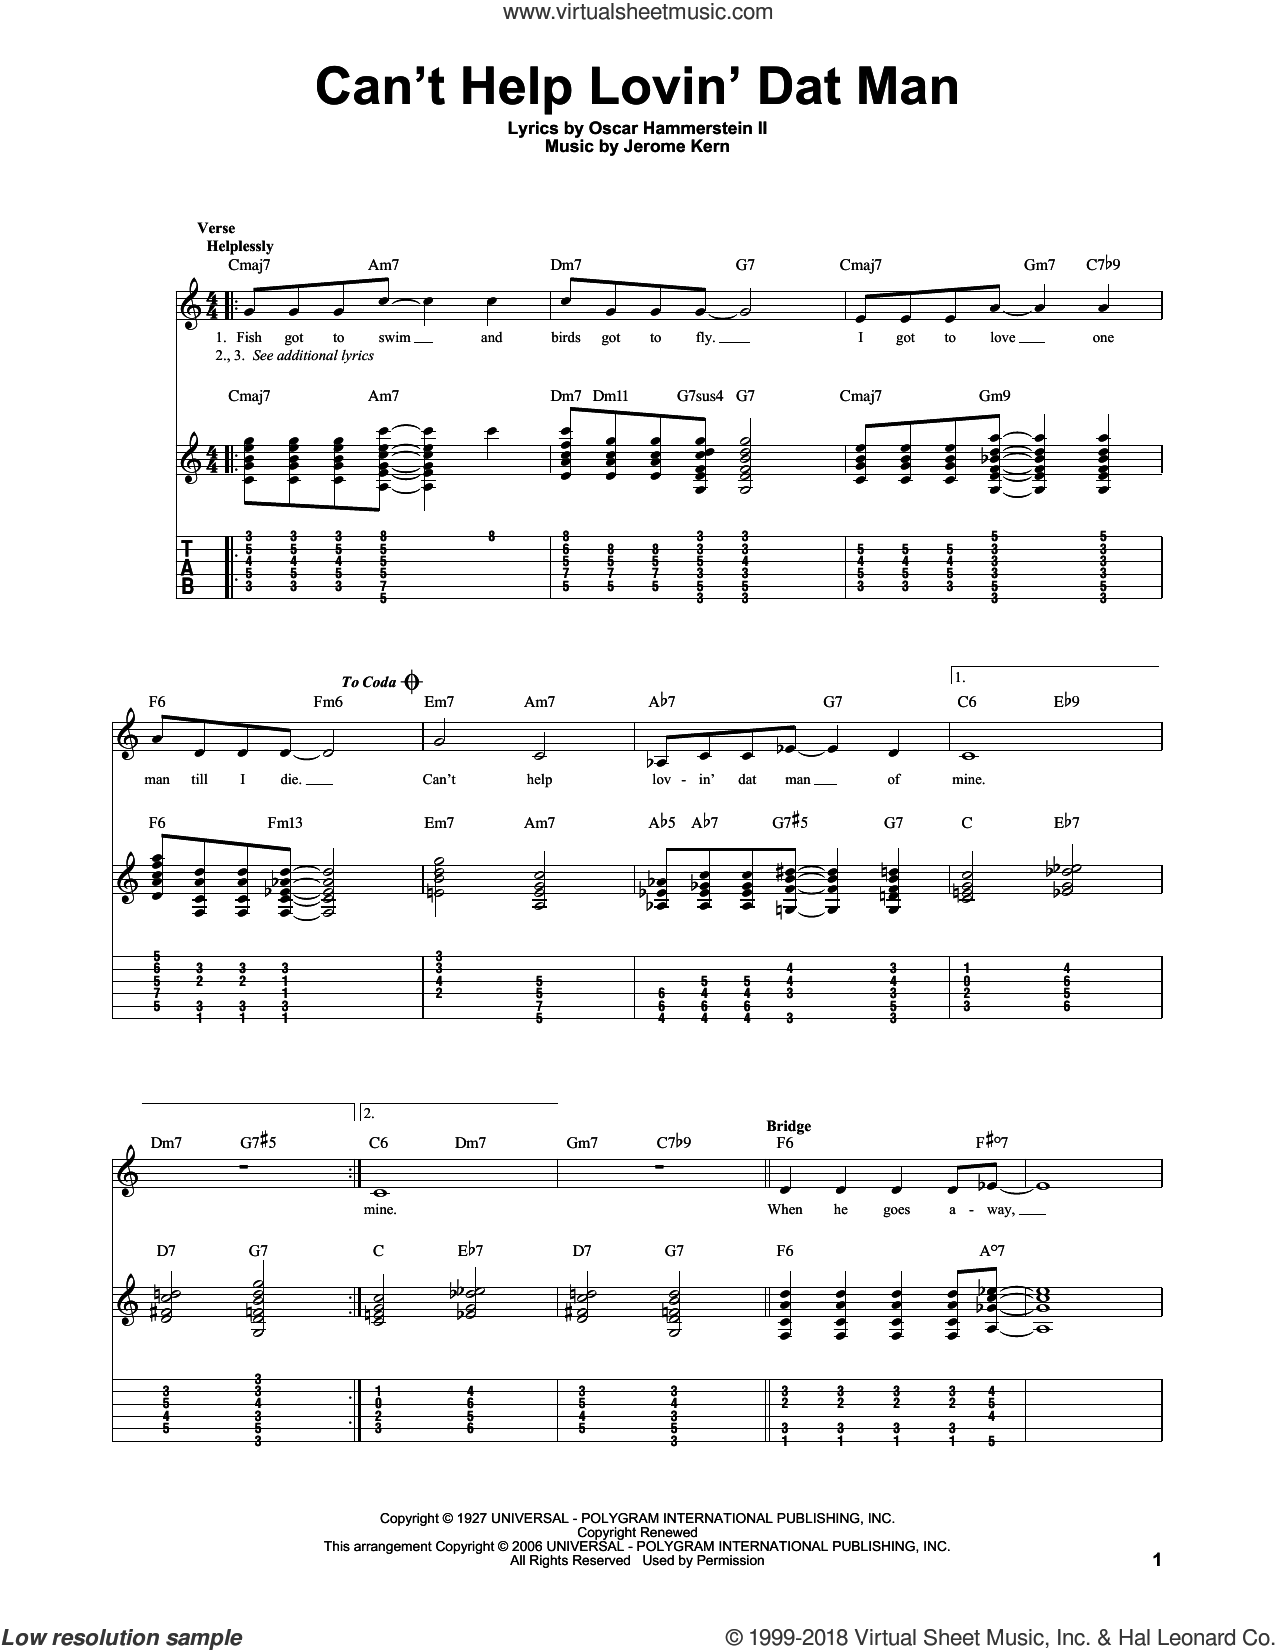 Can't Help Lovin' Dat Man sheet music for guitar solo by Oscar II Hammerstein and Jerome Kern. Score Image Preview.